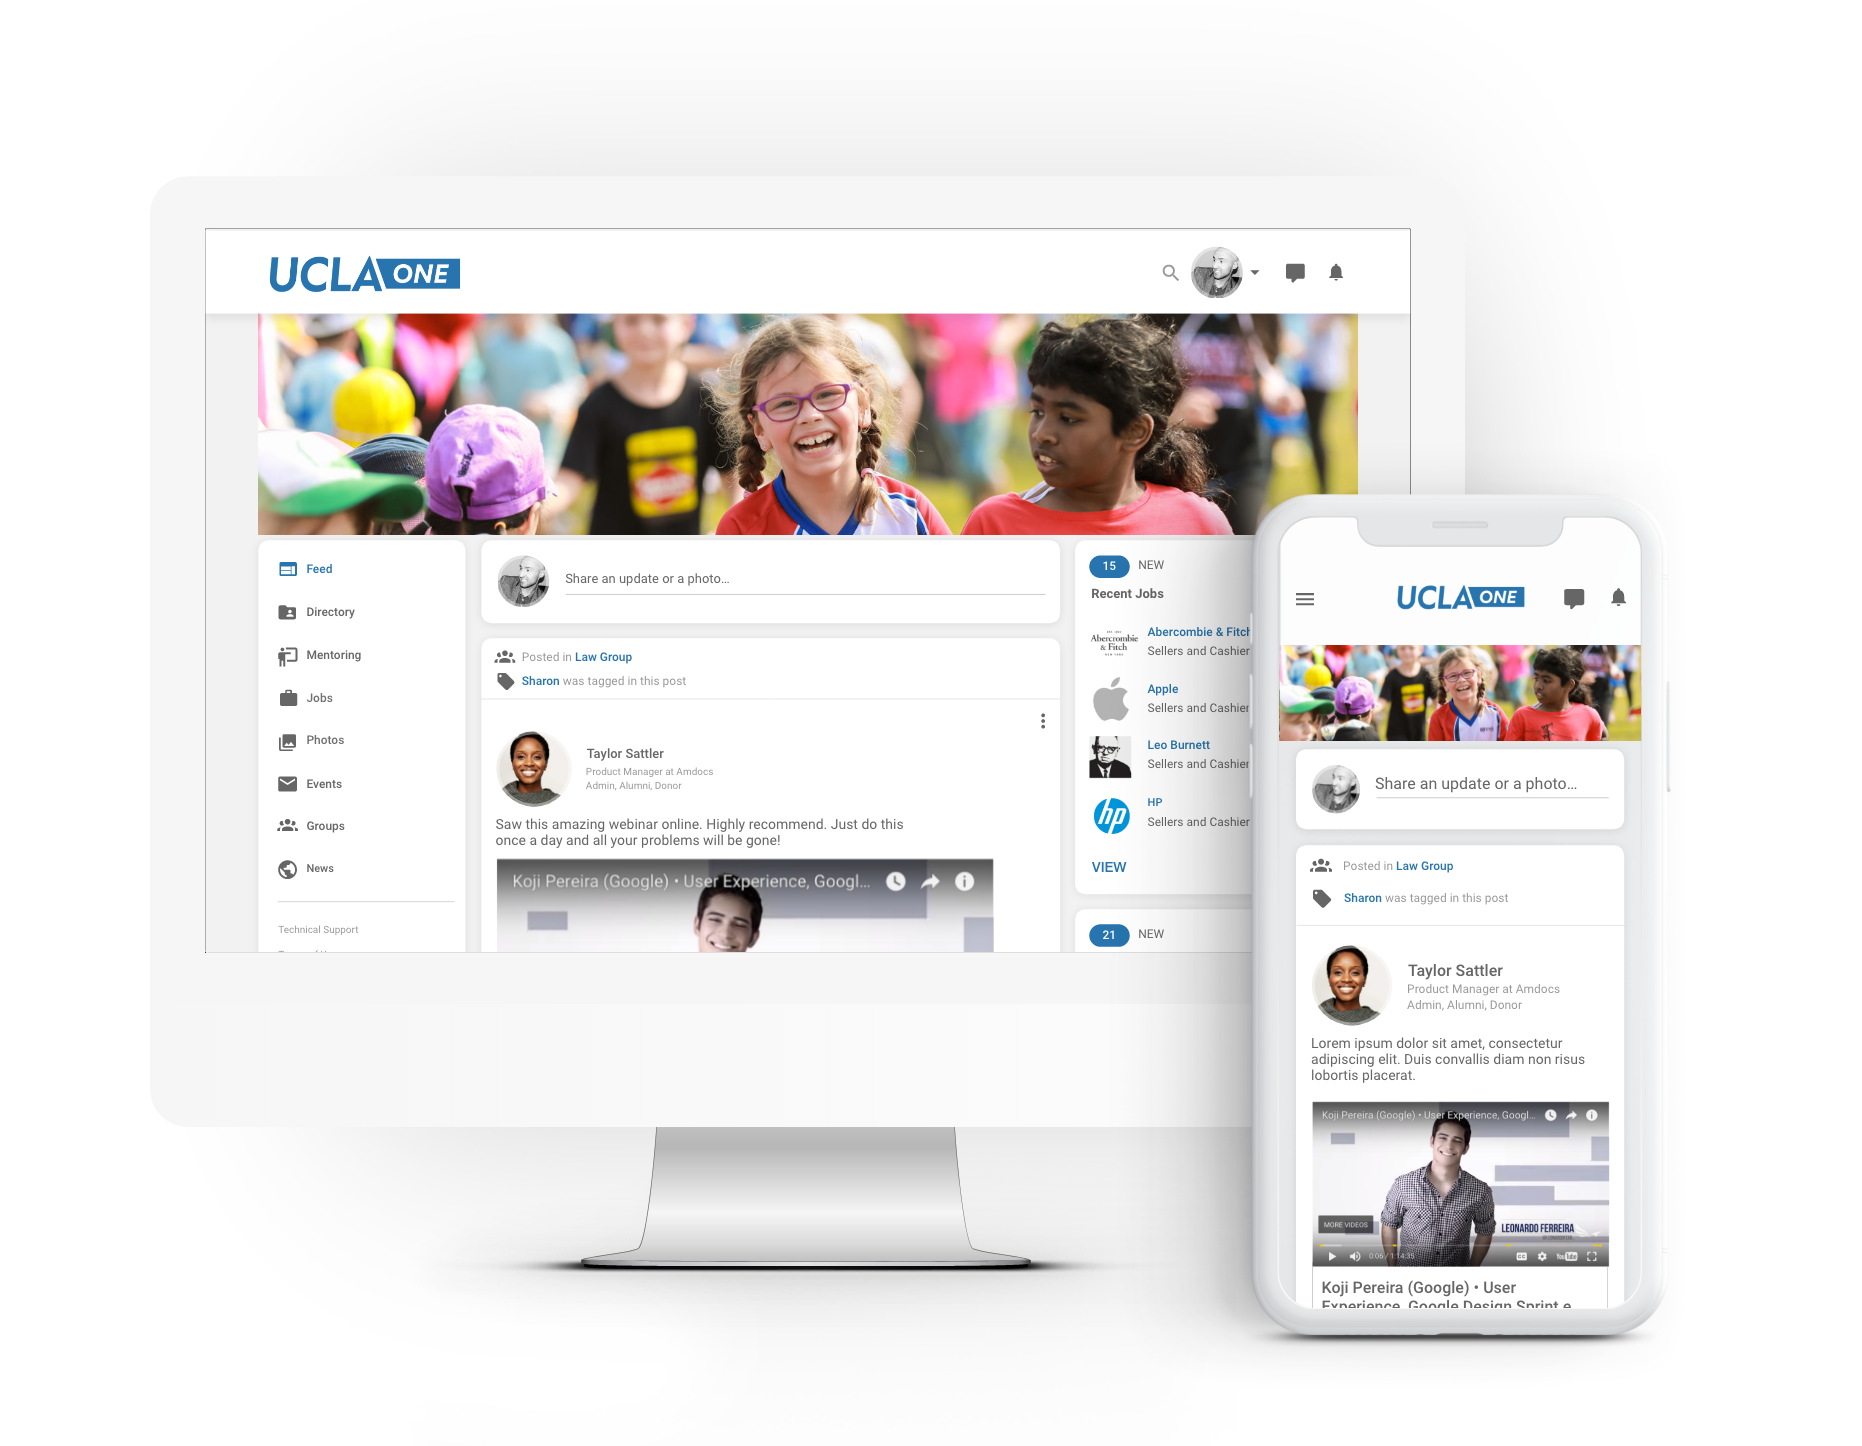 An interactive, personalized feed, designed with the user in mind. Engage your alumni with automated widgets for mentoring matches, suggested connections, donation requests and more.